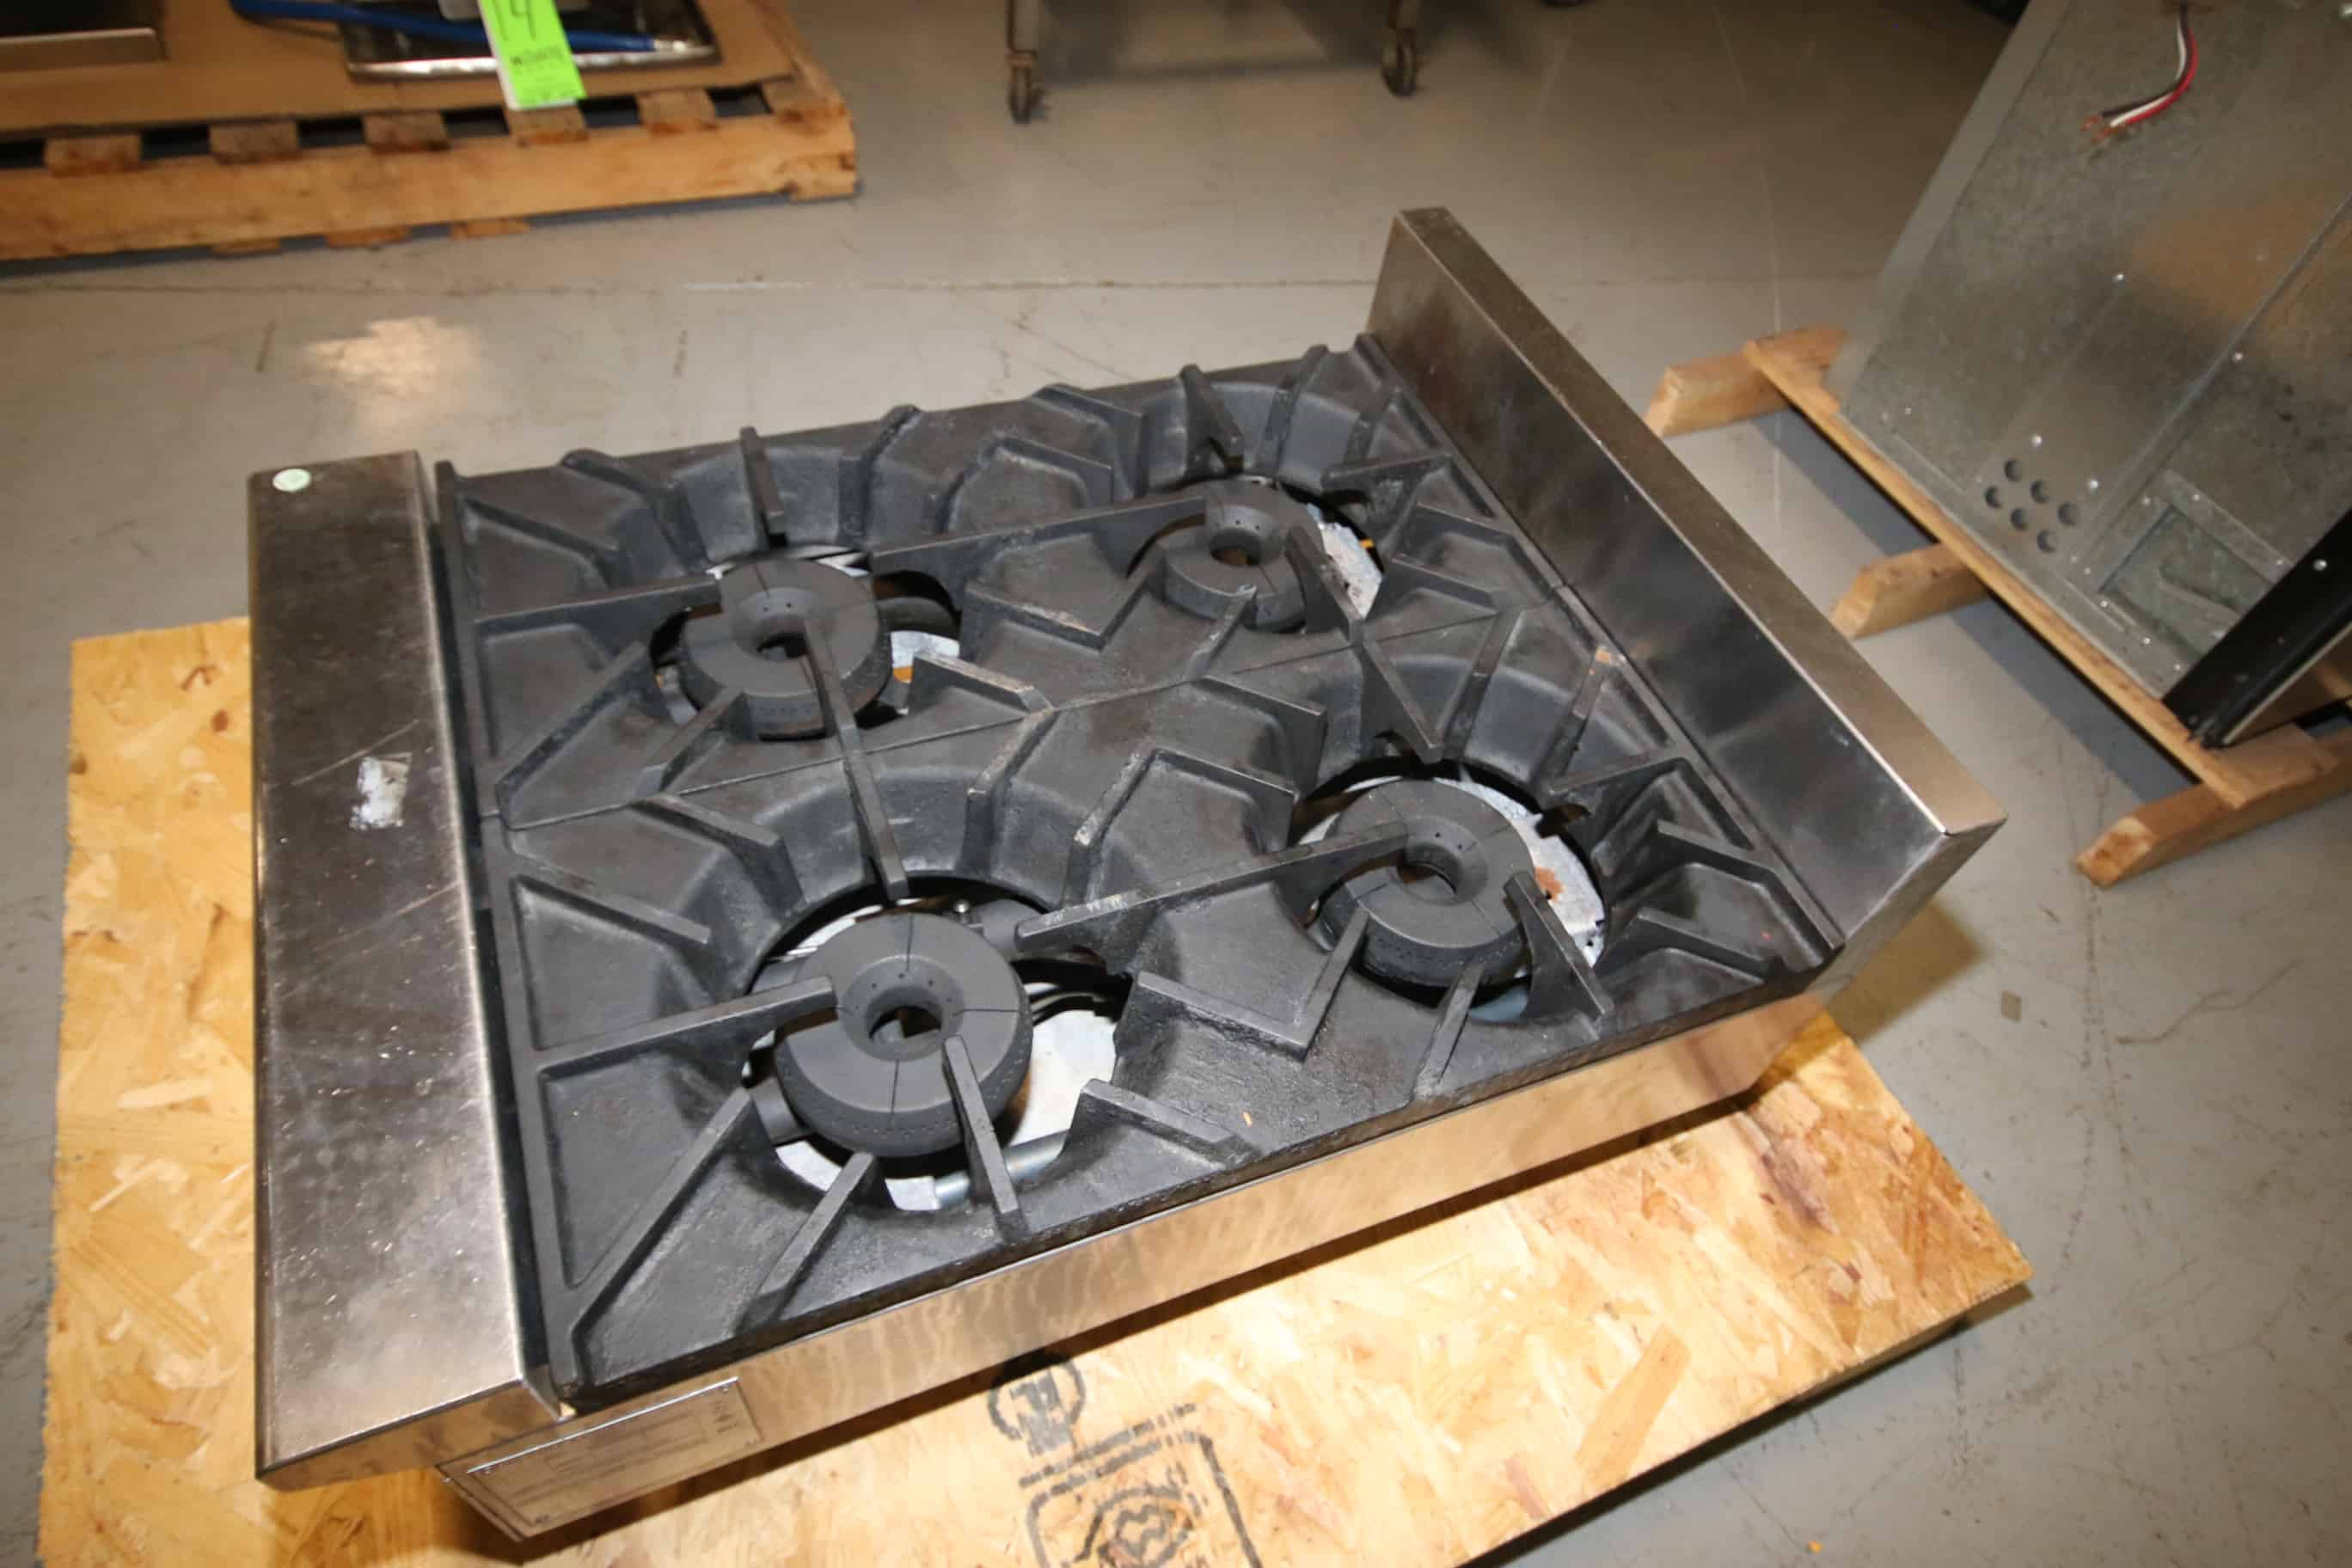 Wolf 4-Burner S/S Stove, M/N AHP424-4, S/N 658, Mounted on S/S Legs